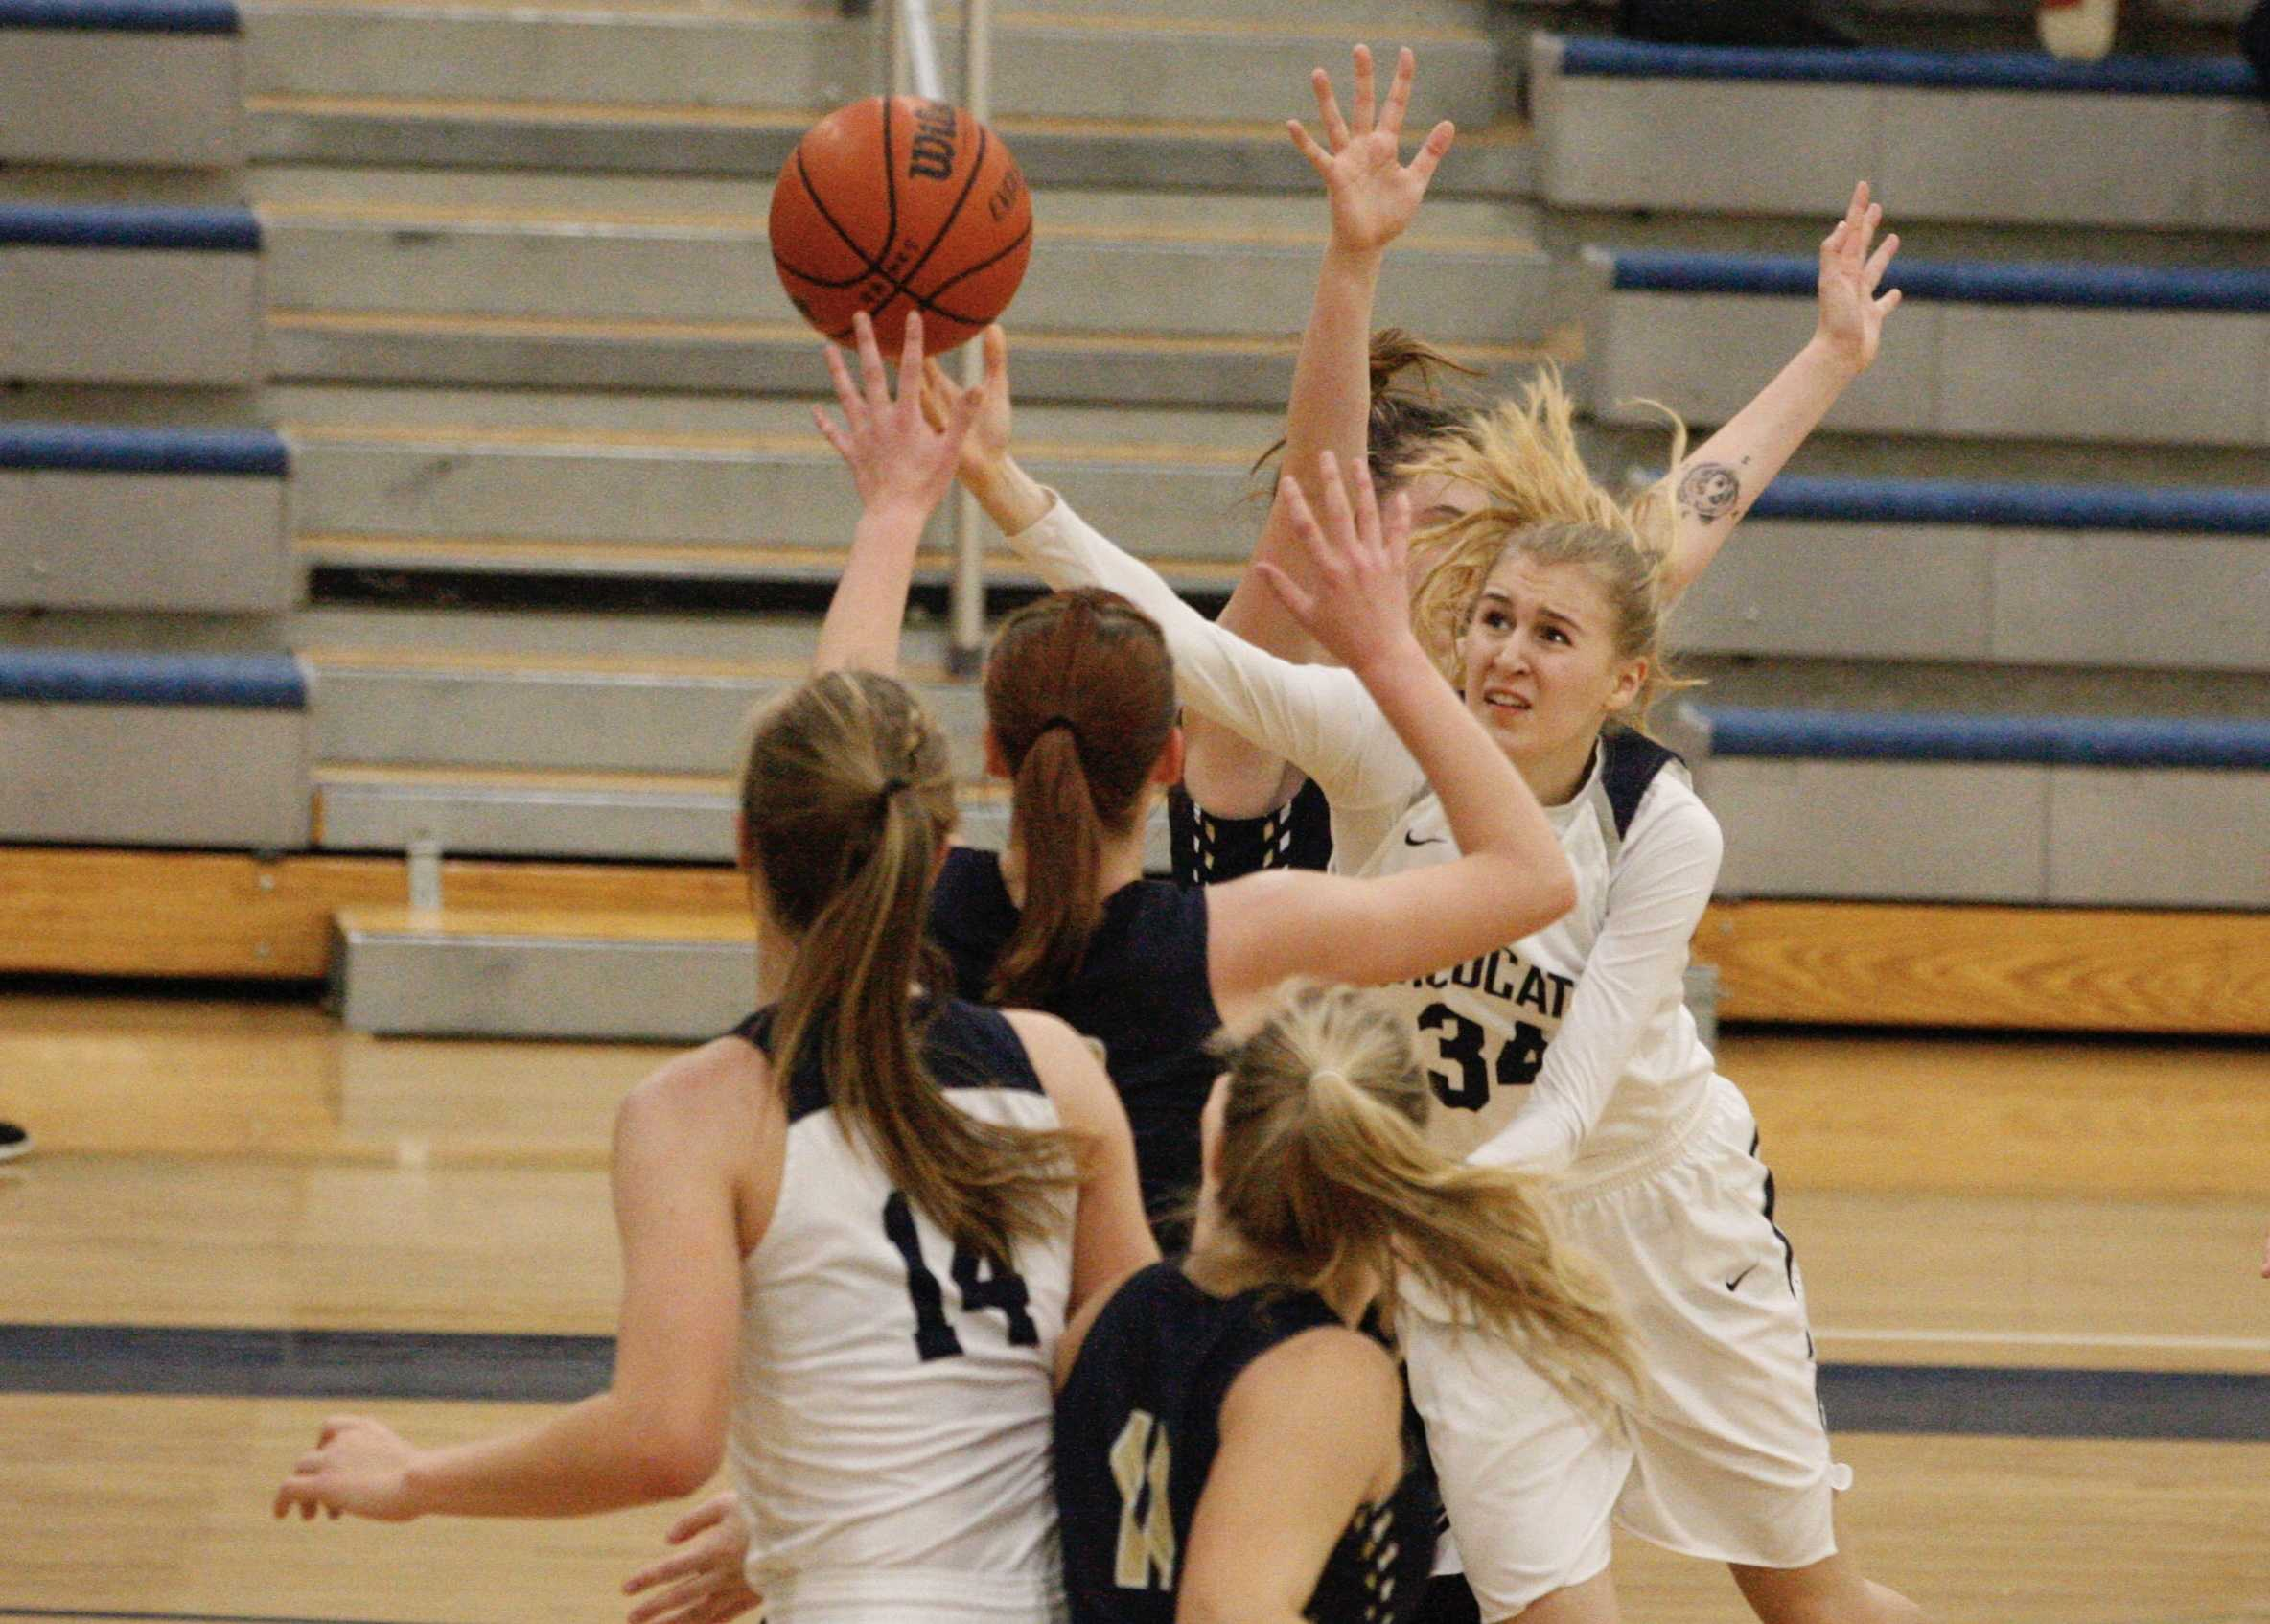 Wilsonville junior guard Renee Lee slices in between three Banks defenders to get off a shot. (Photo by Norm Maves Jr.)